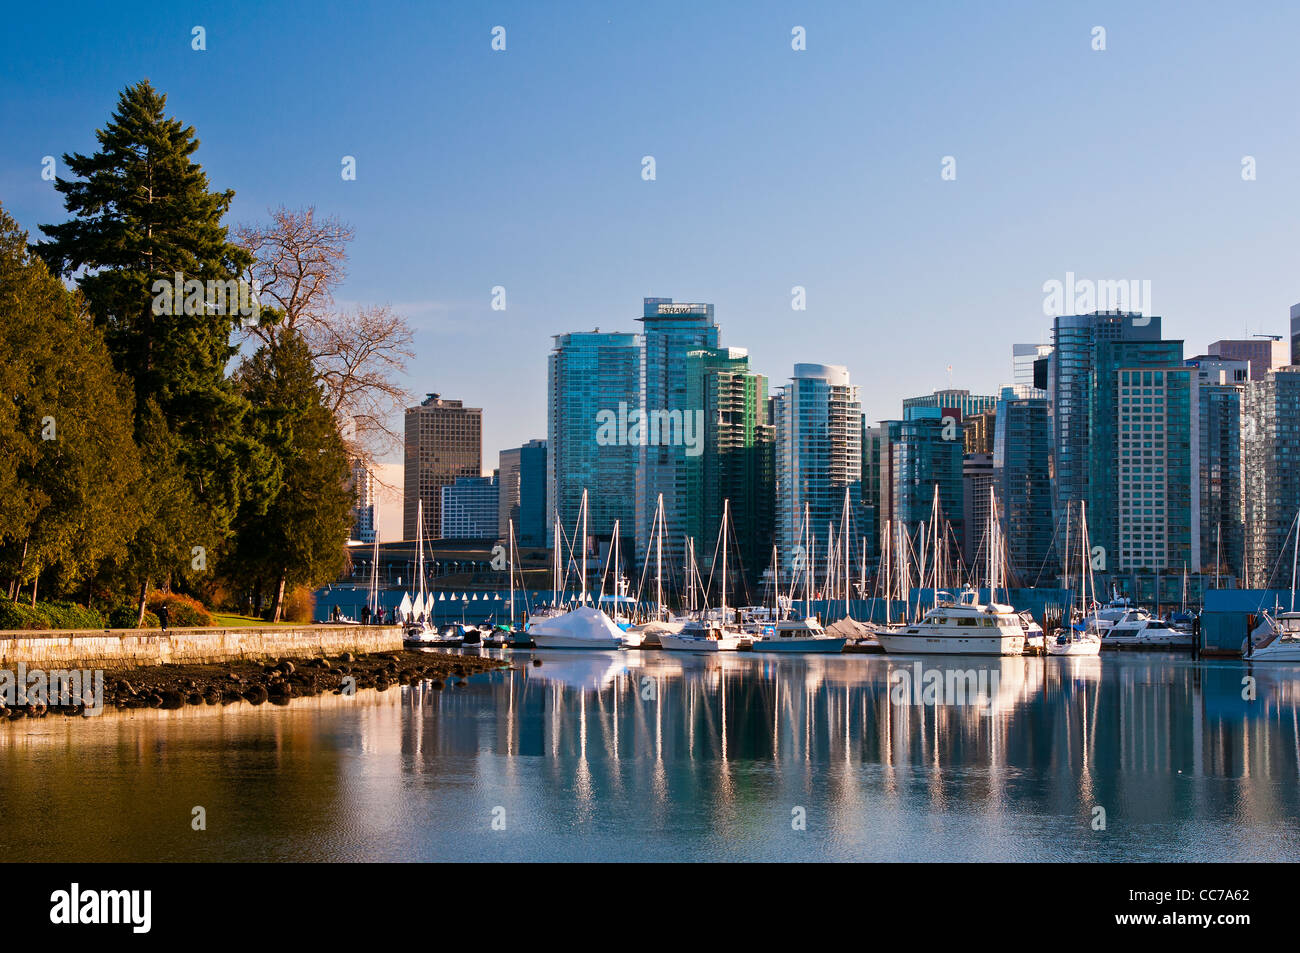 Panoramic view over city center and Marina, Vancouver, British Columbia, Canada - Stock Image